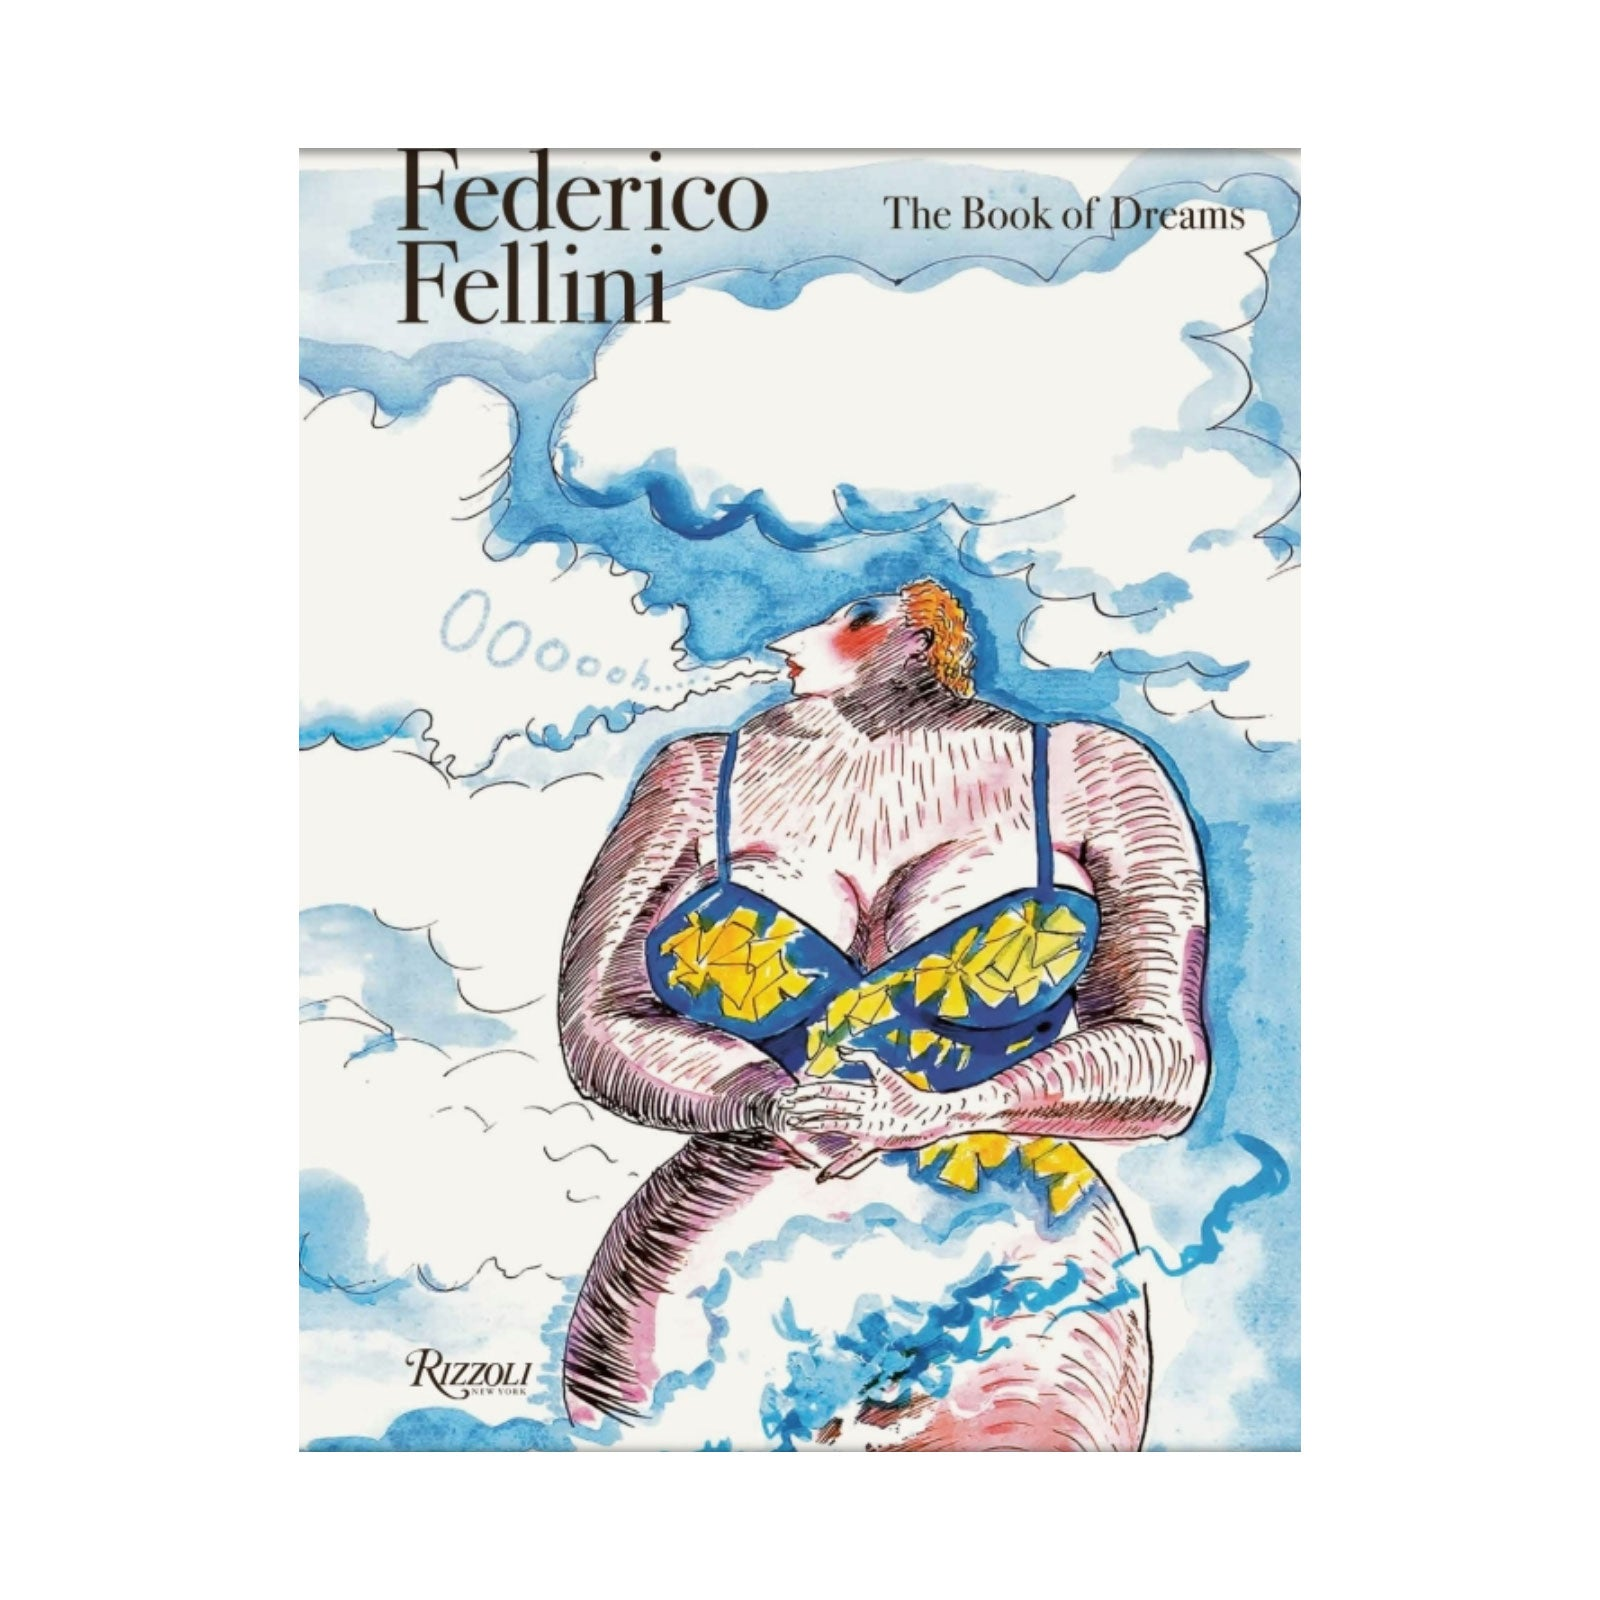 Federico Fellini. The Book of Dreams